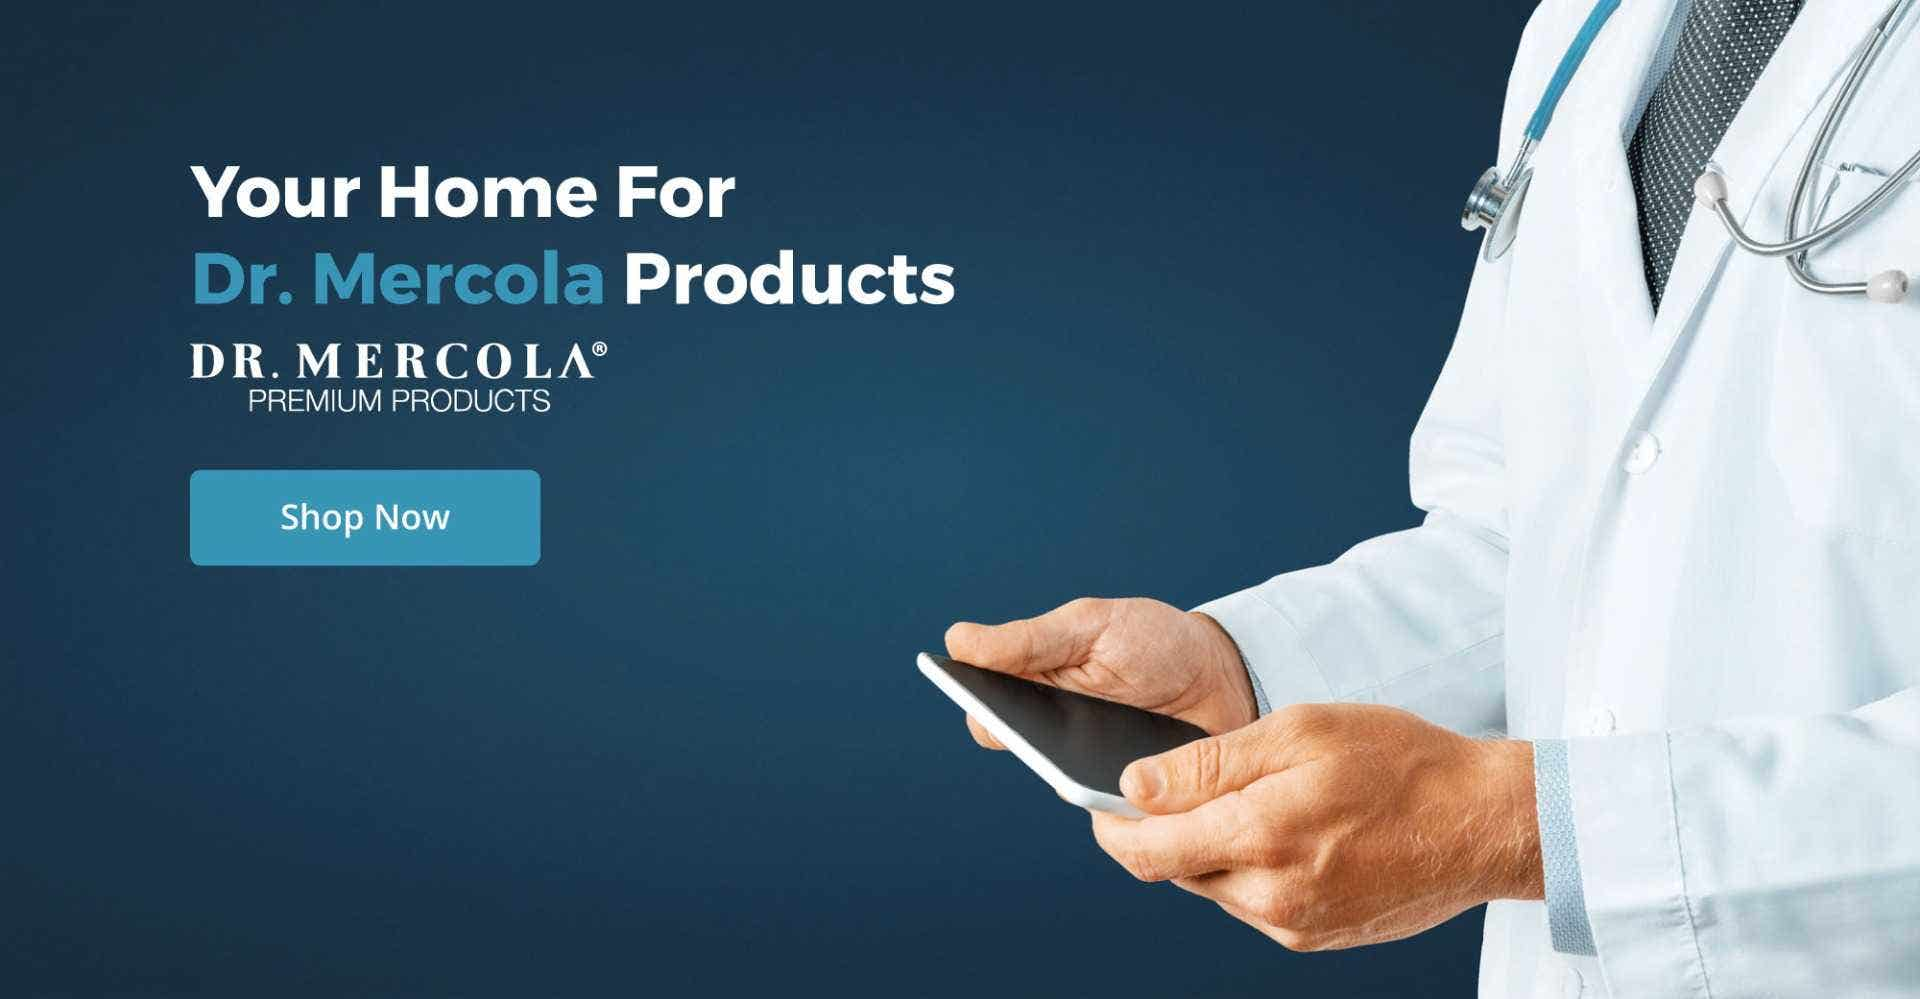 Your Home for Dr. Mercola Products